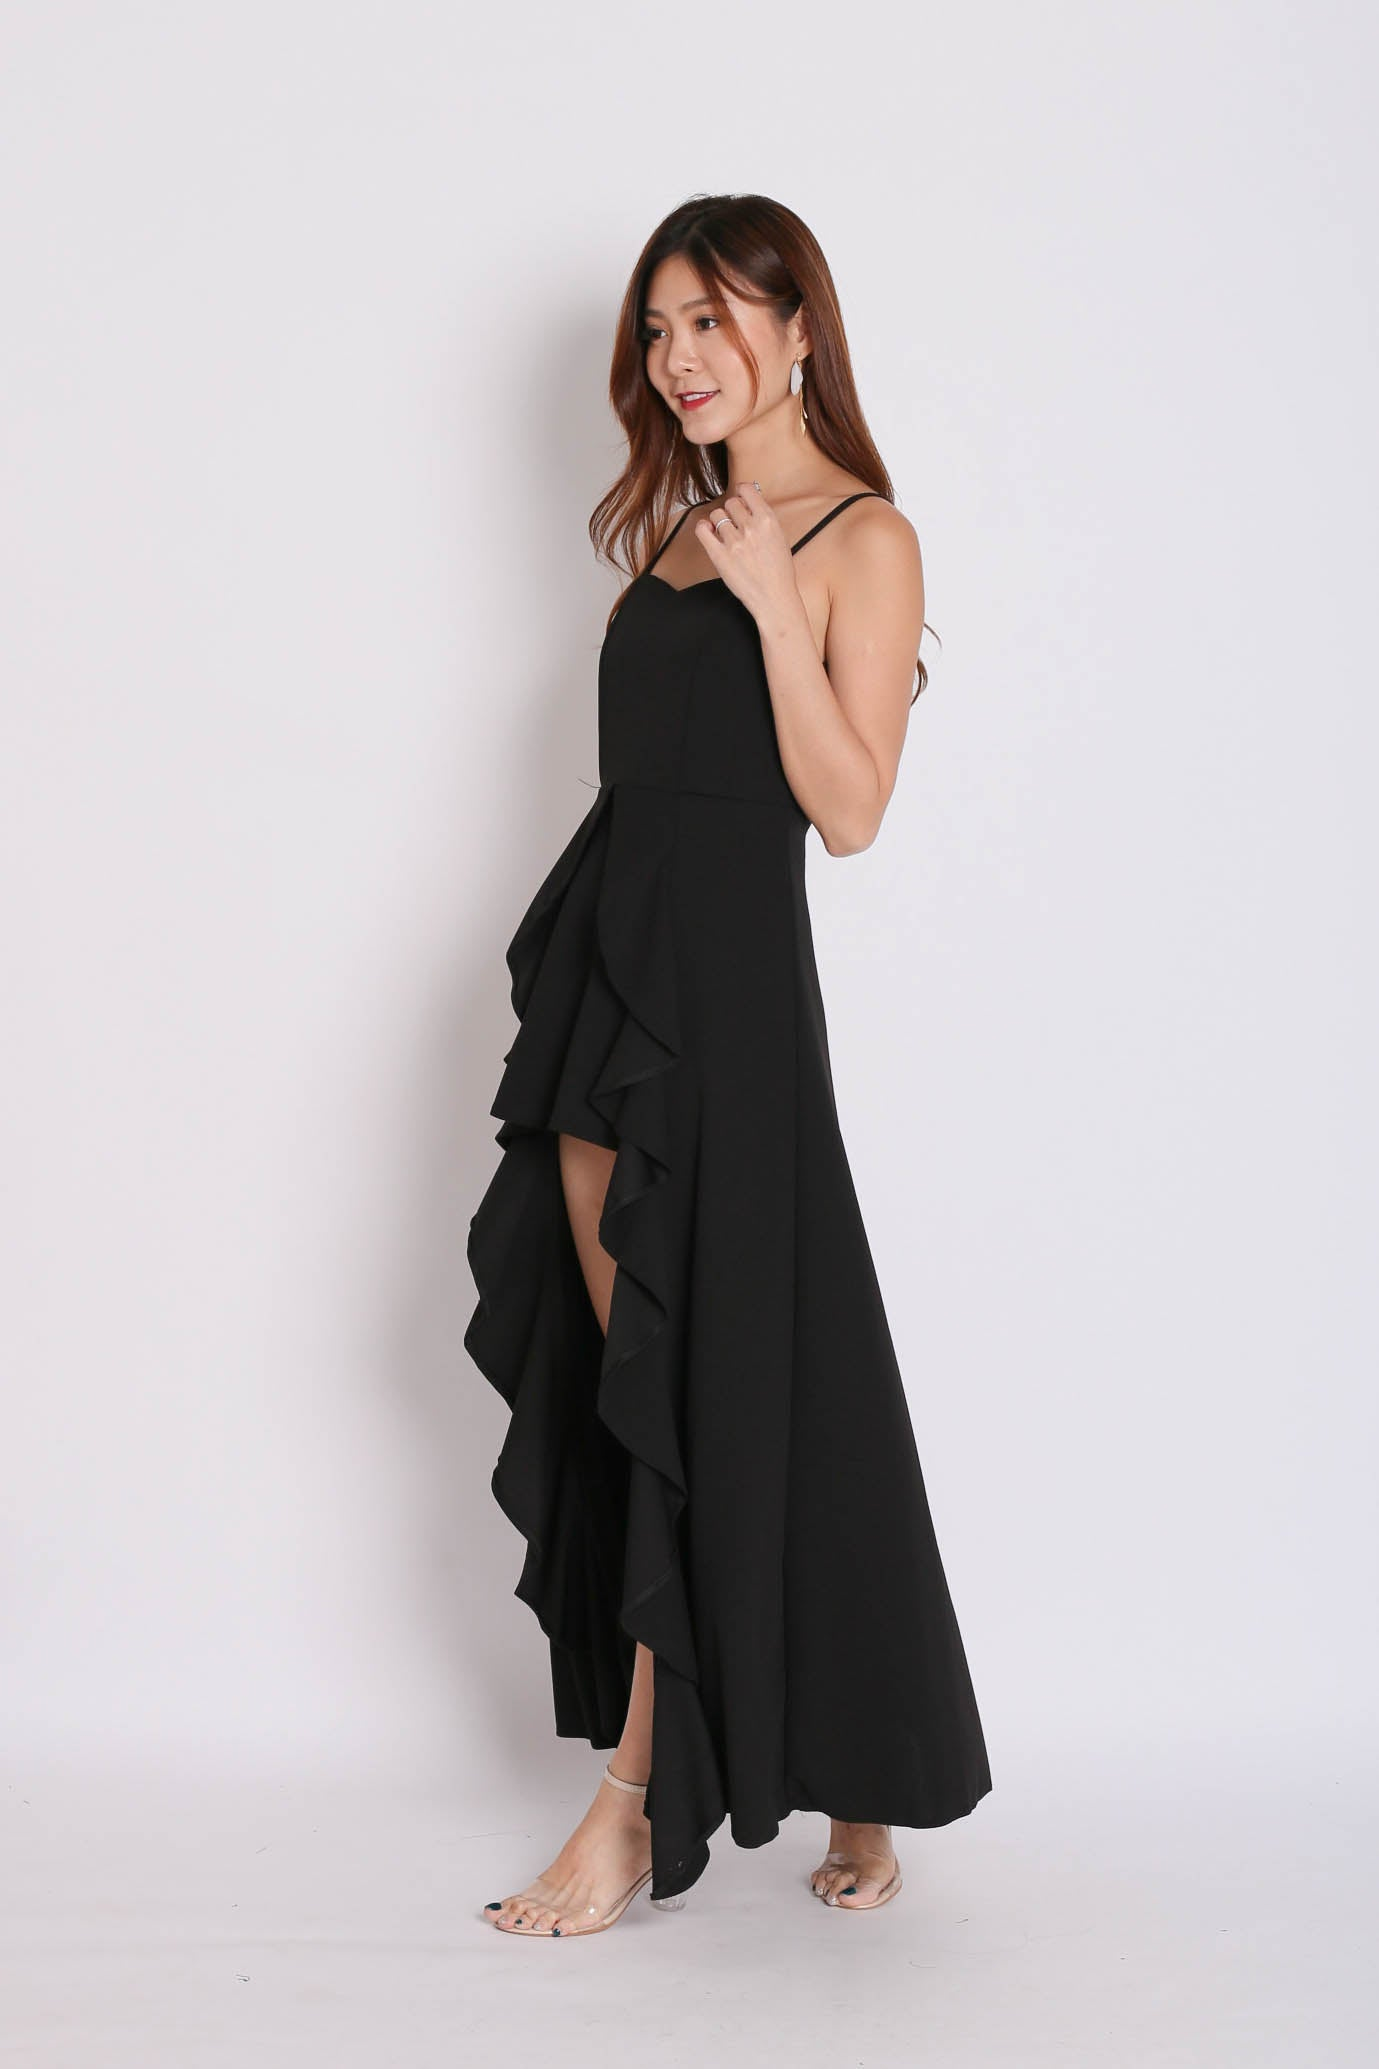 DIVA RUFFLES DRAPE DRESS IN BLACK